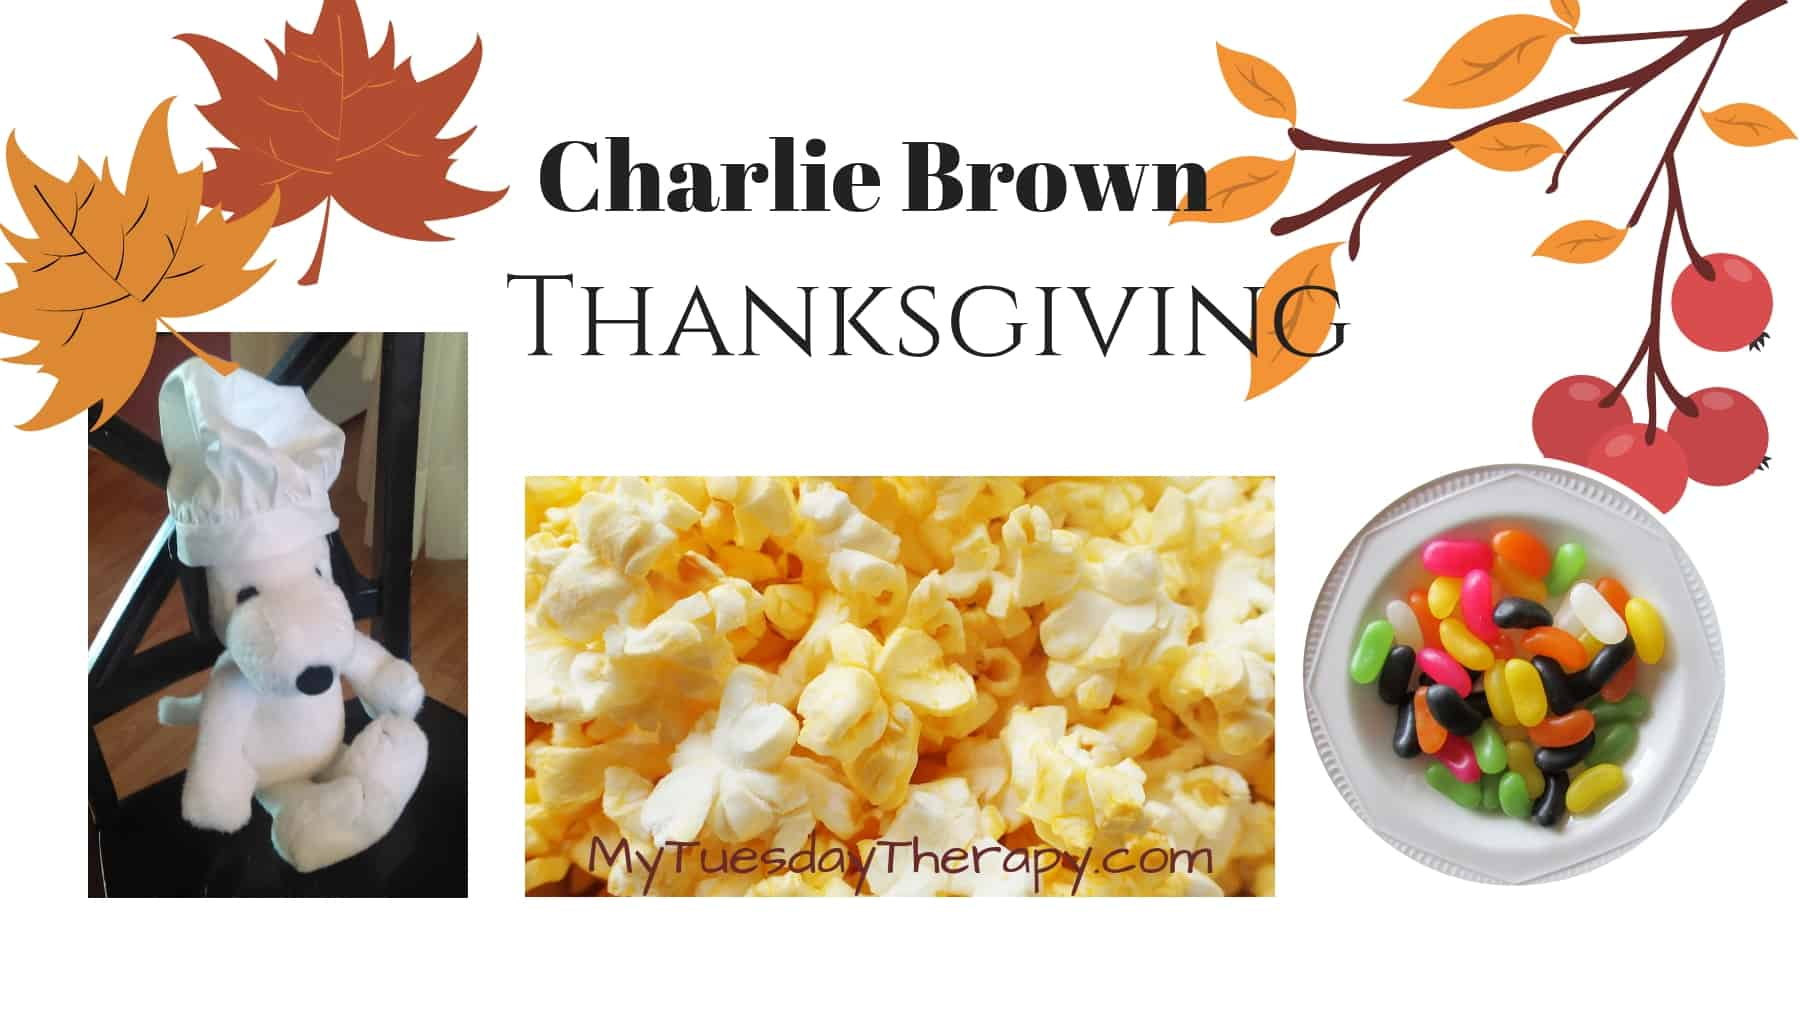 Charlie Brown Thanksgiving. Fun family fall ideas. Your kids will love this awesome fall tradition.